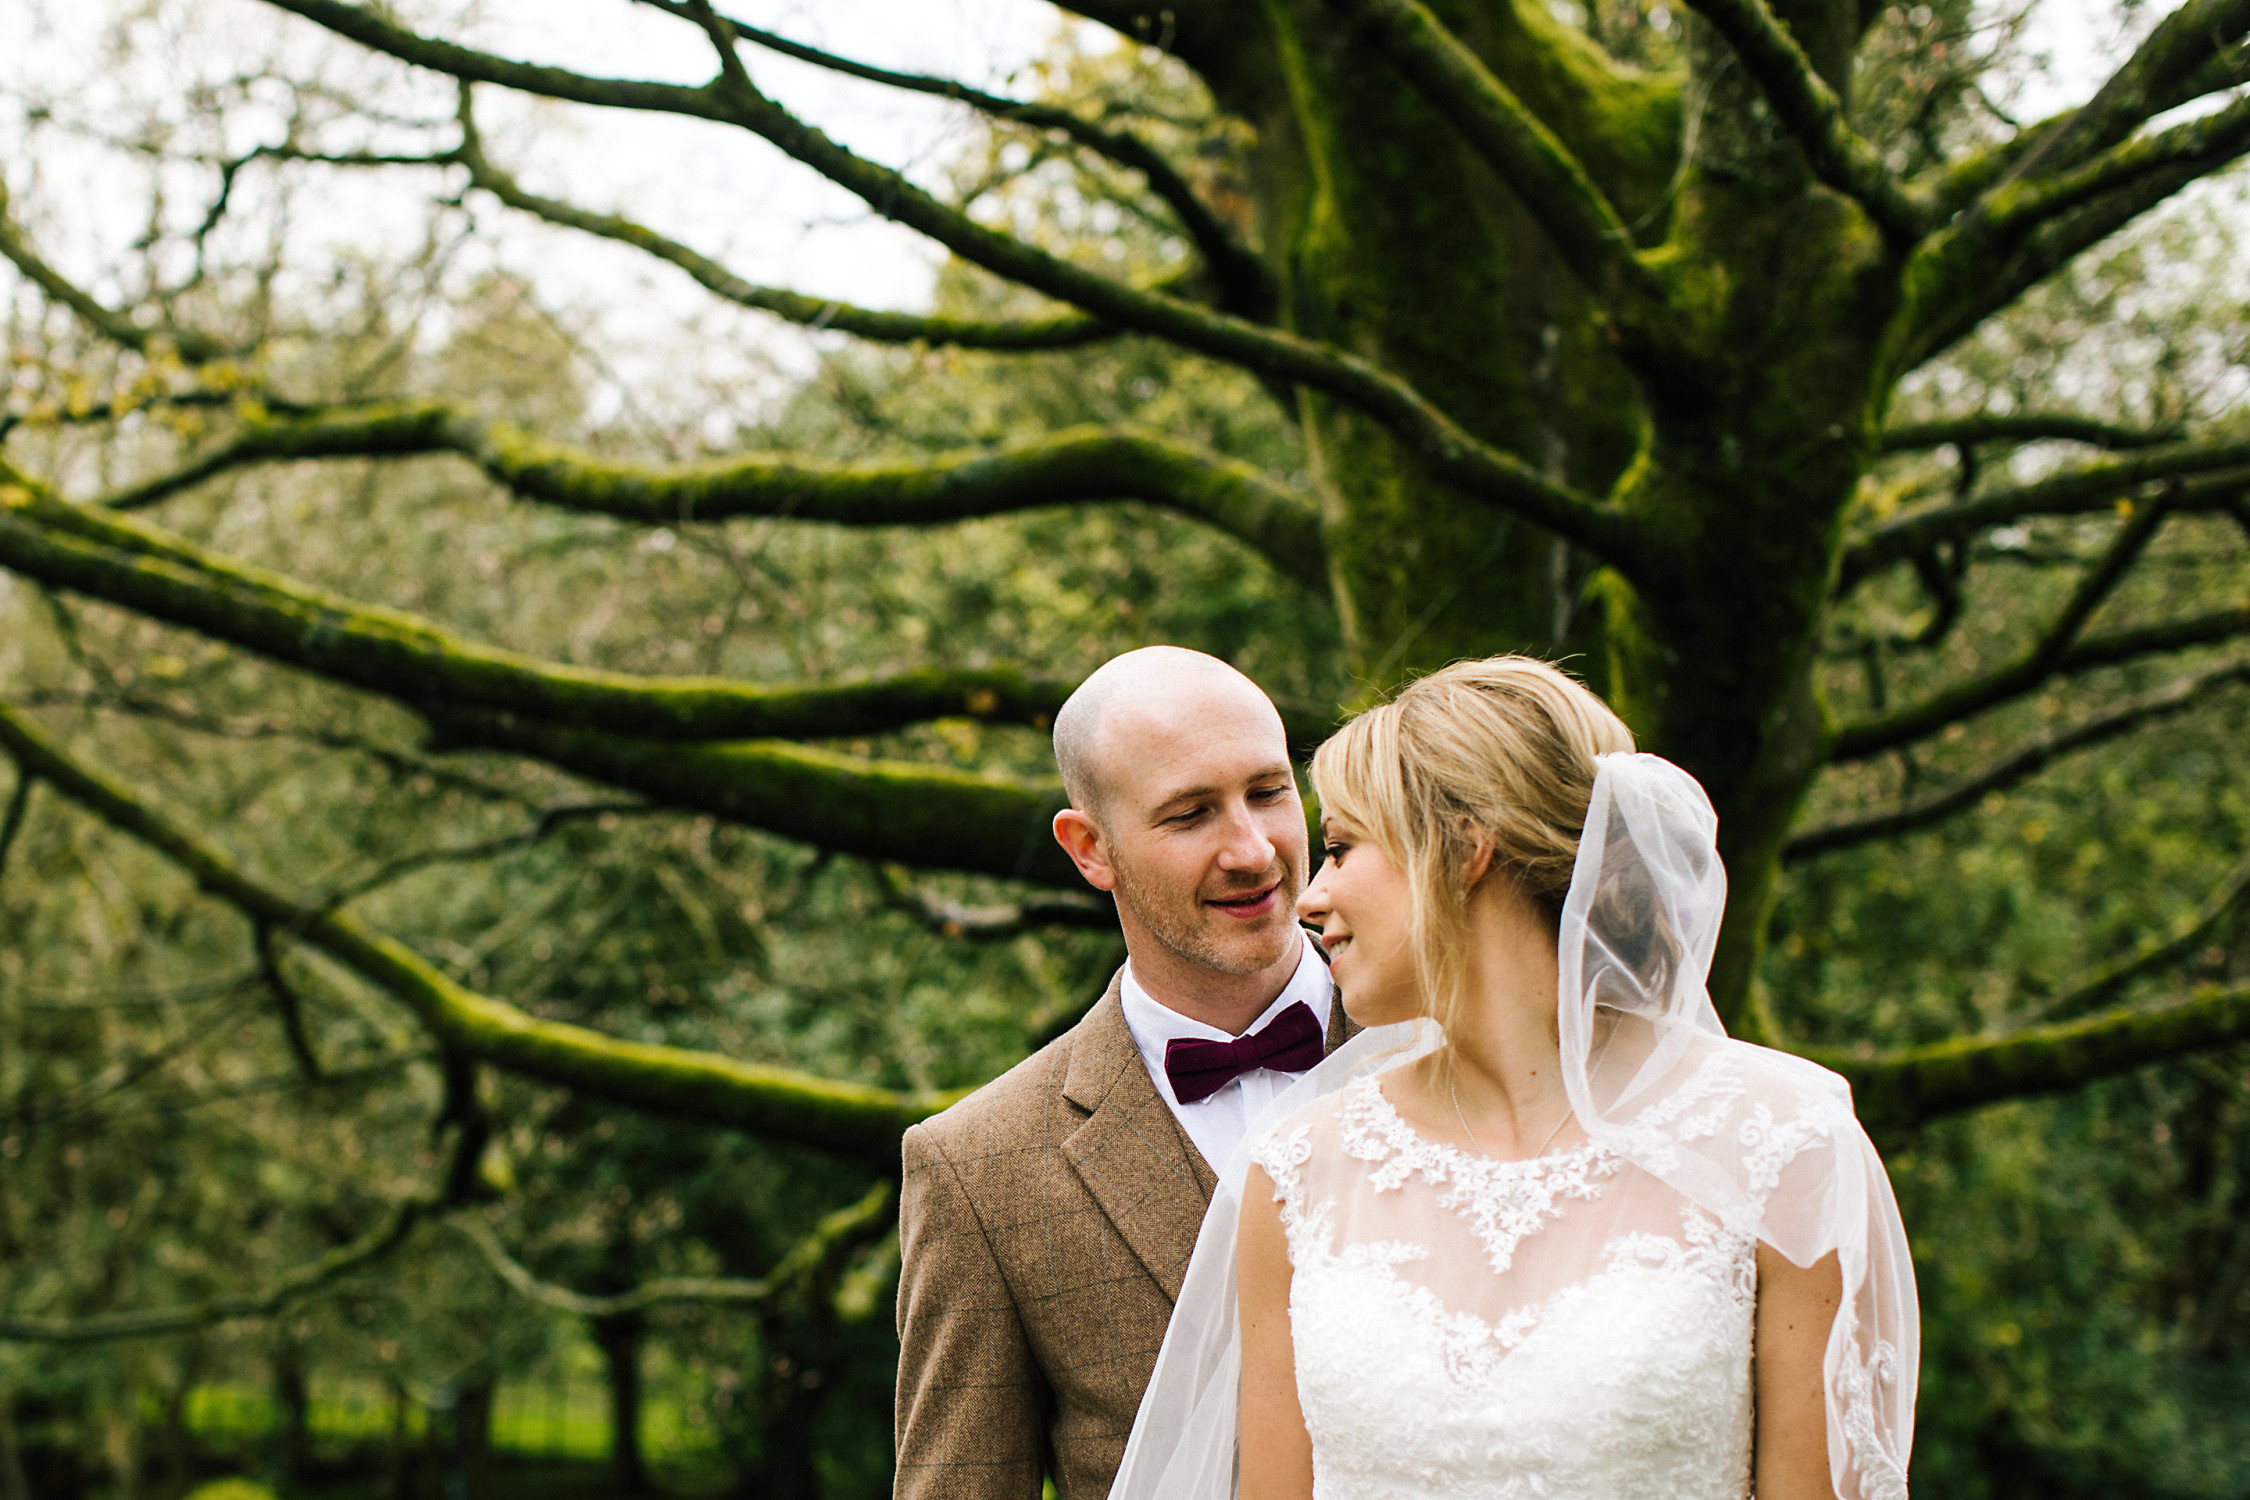 crow-hill-wedding-photography-kelly-clarke-photography-441